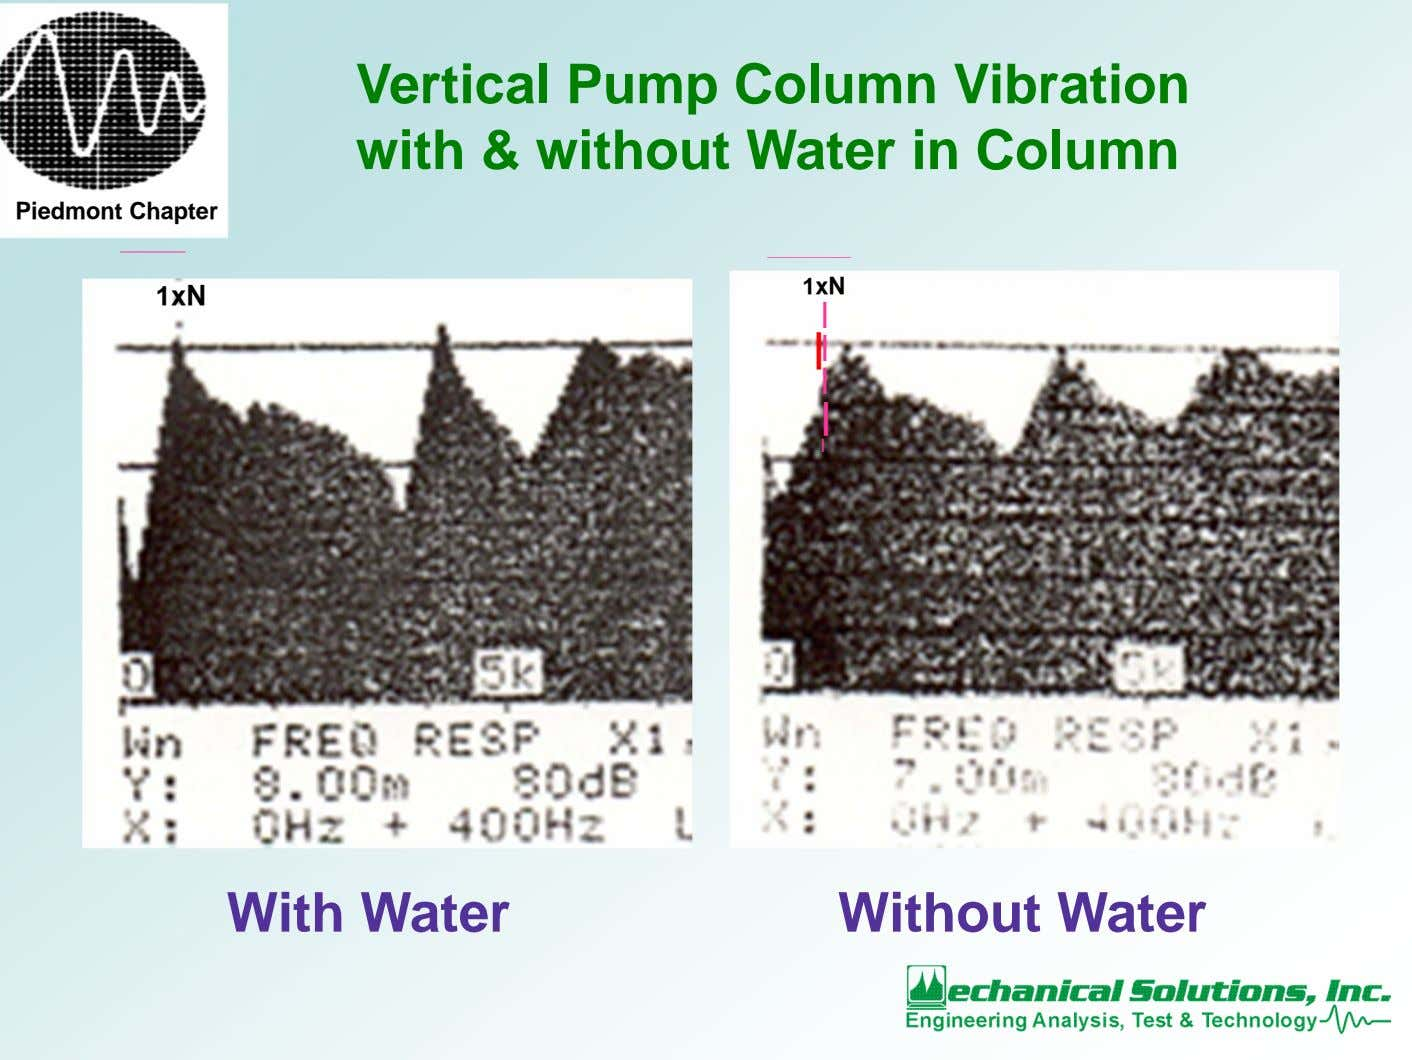 Vertical Pump Column Vibration with & without Water in Column Piedmont Chapter 1xN 1xN |